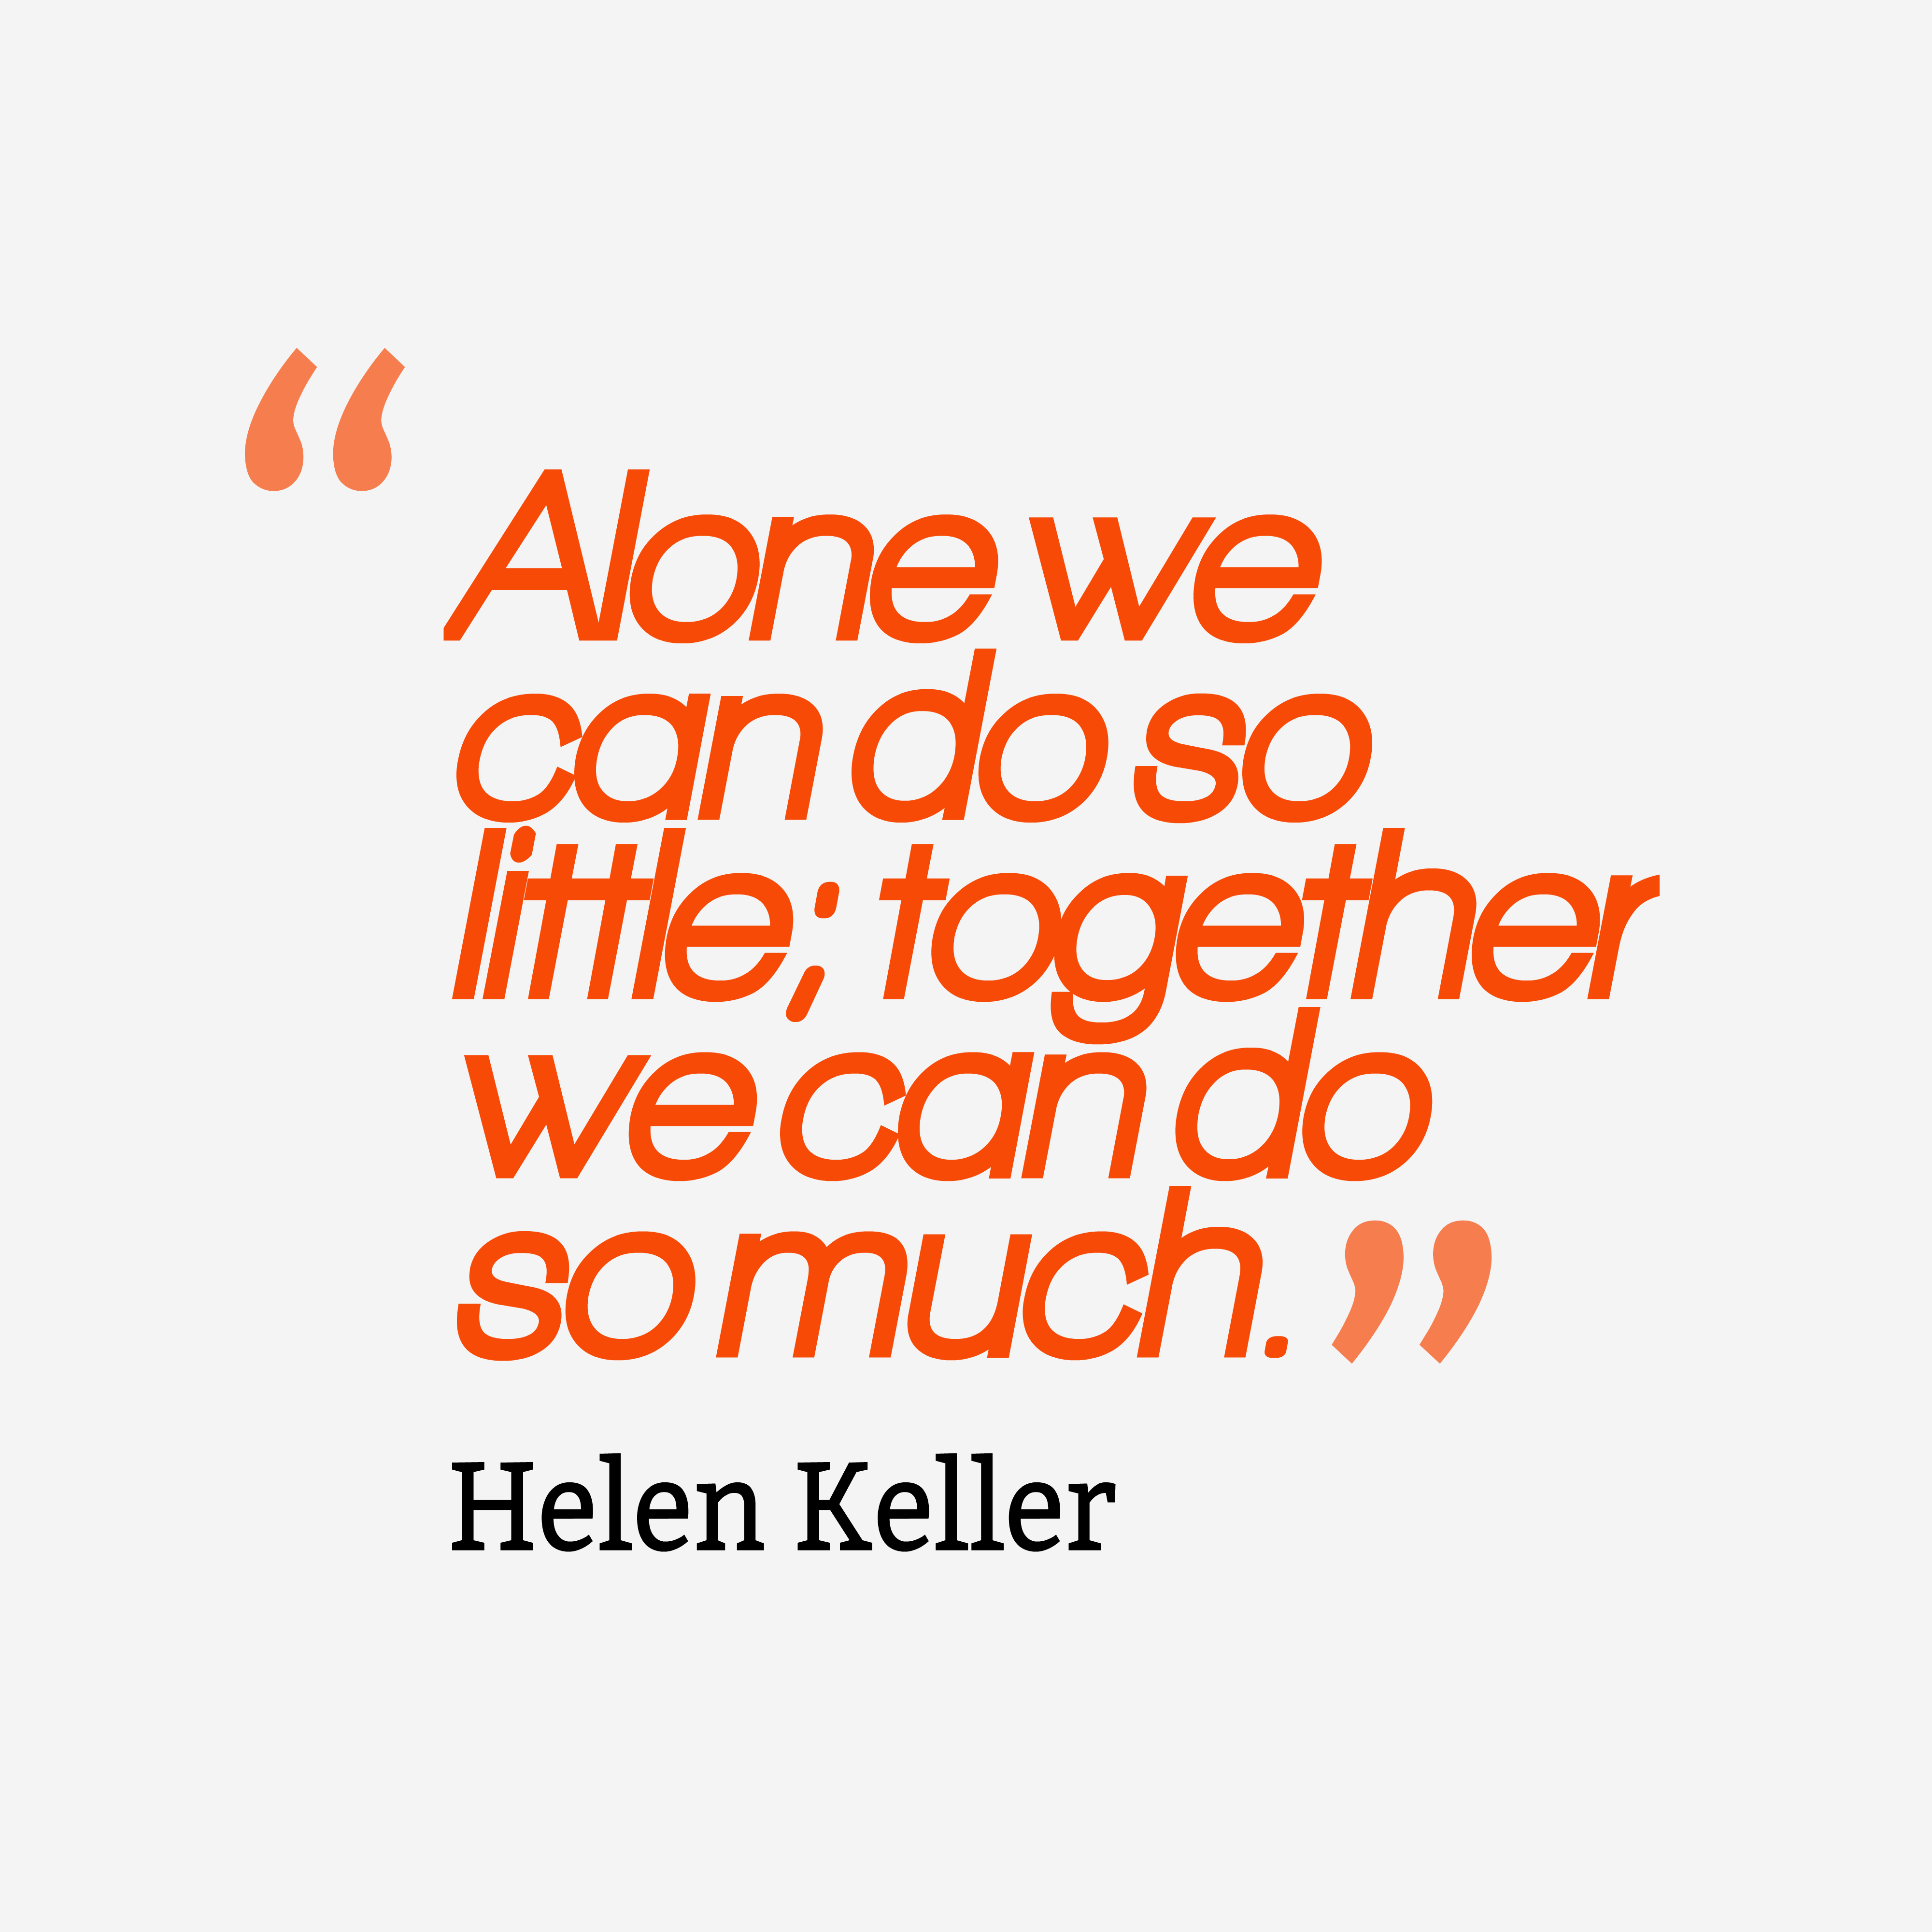 Working together quotes helen keller quotes alone we can do soquotes by helen keller altavistaventures Images